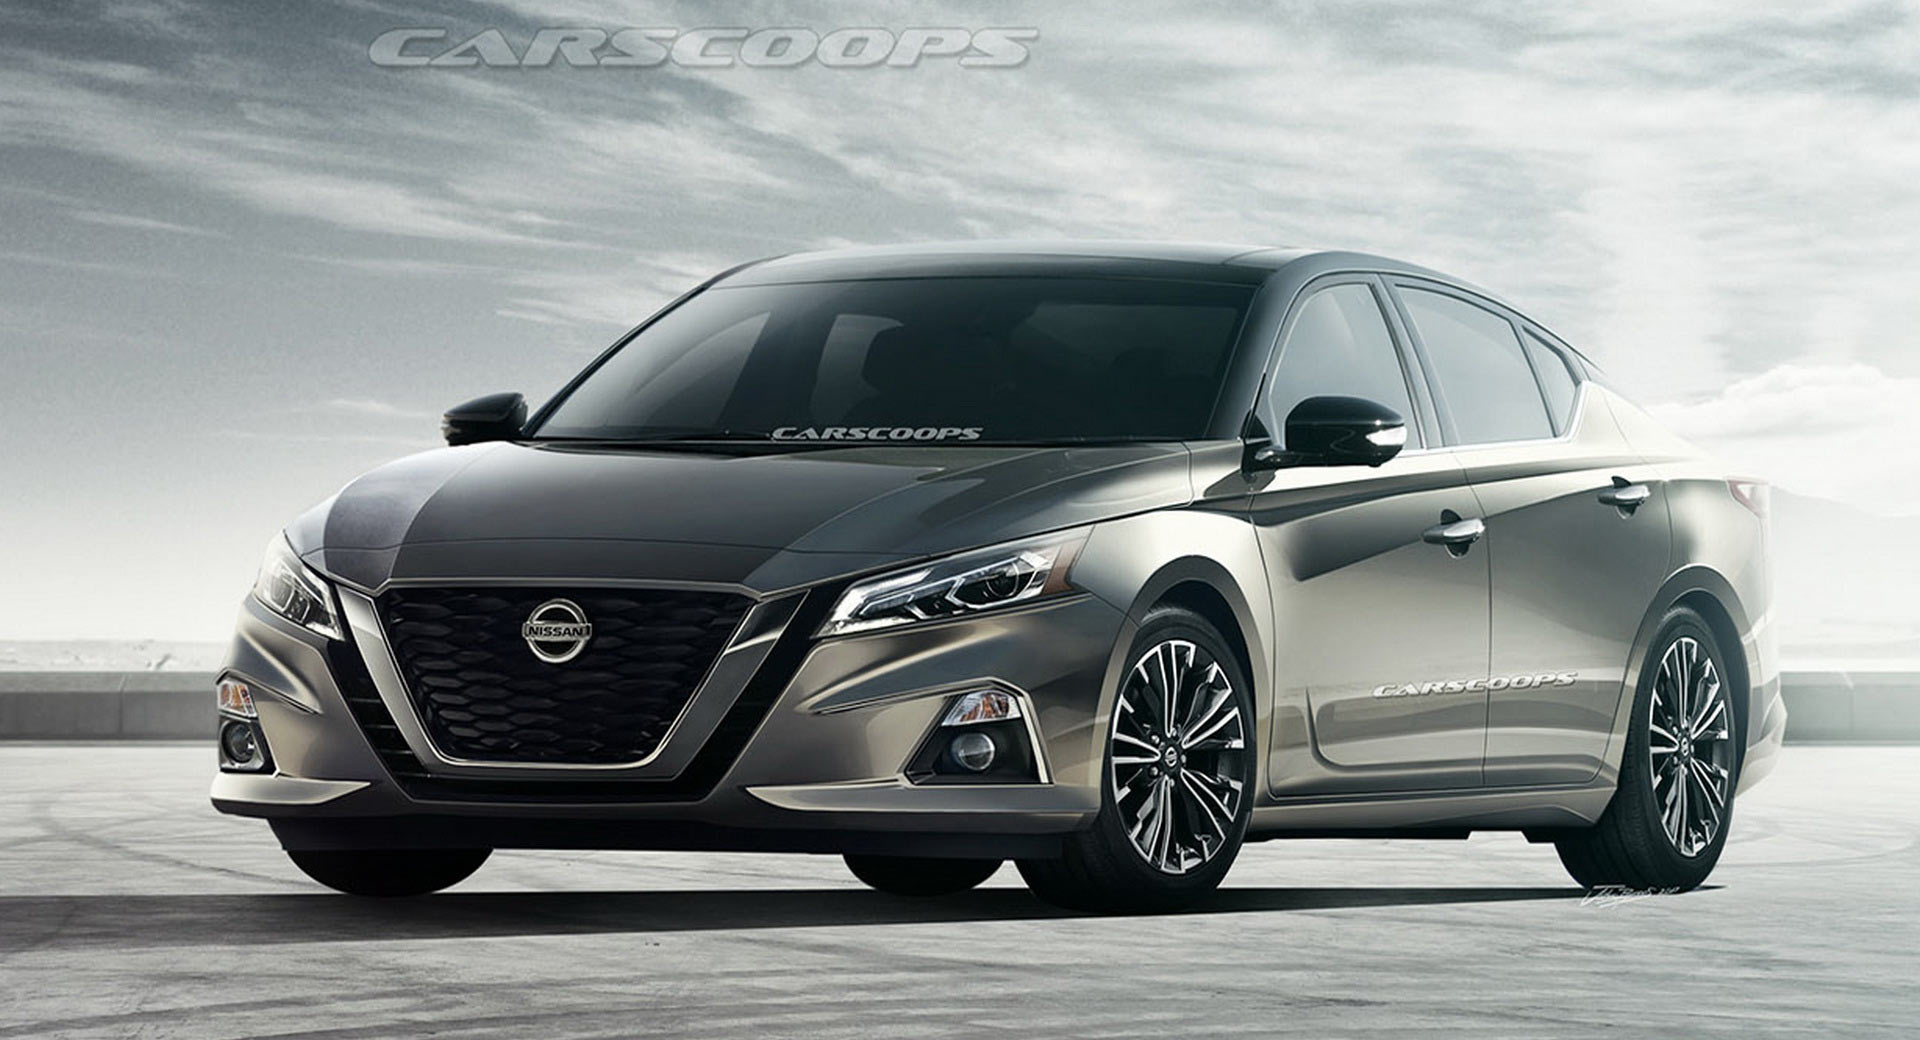 2019 nissan altima everything we know so far carscoops. Black Bedroom Furniture Sets. Home Design Ideas